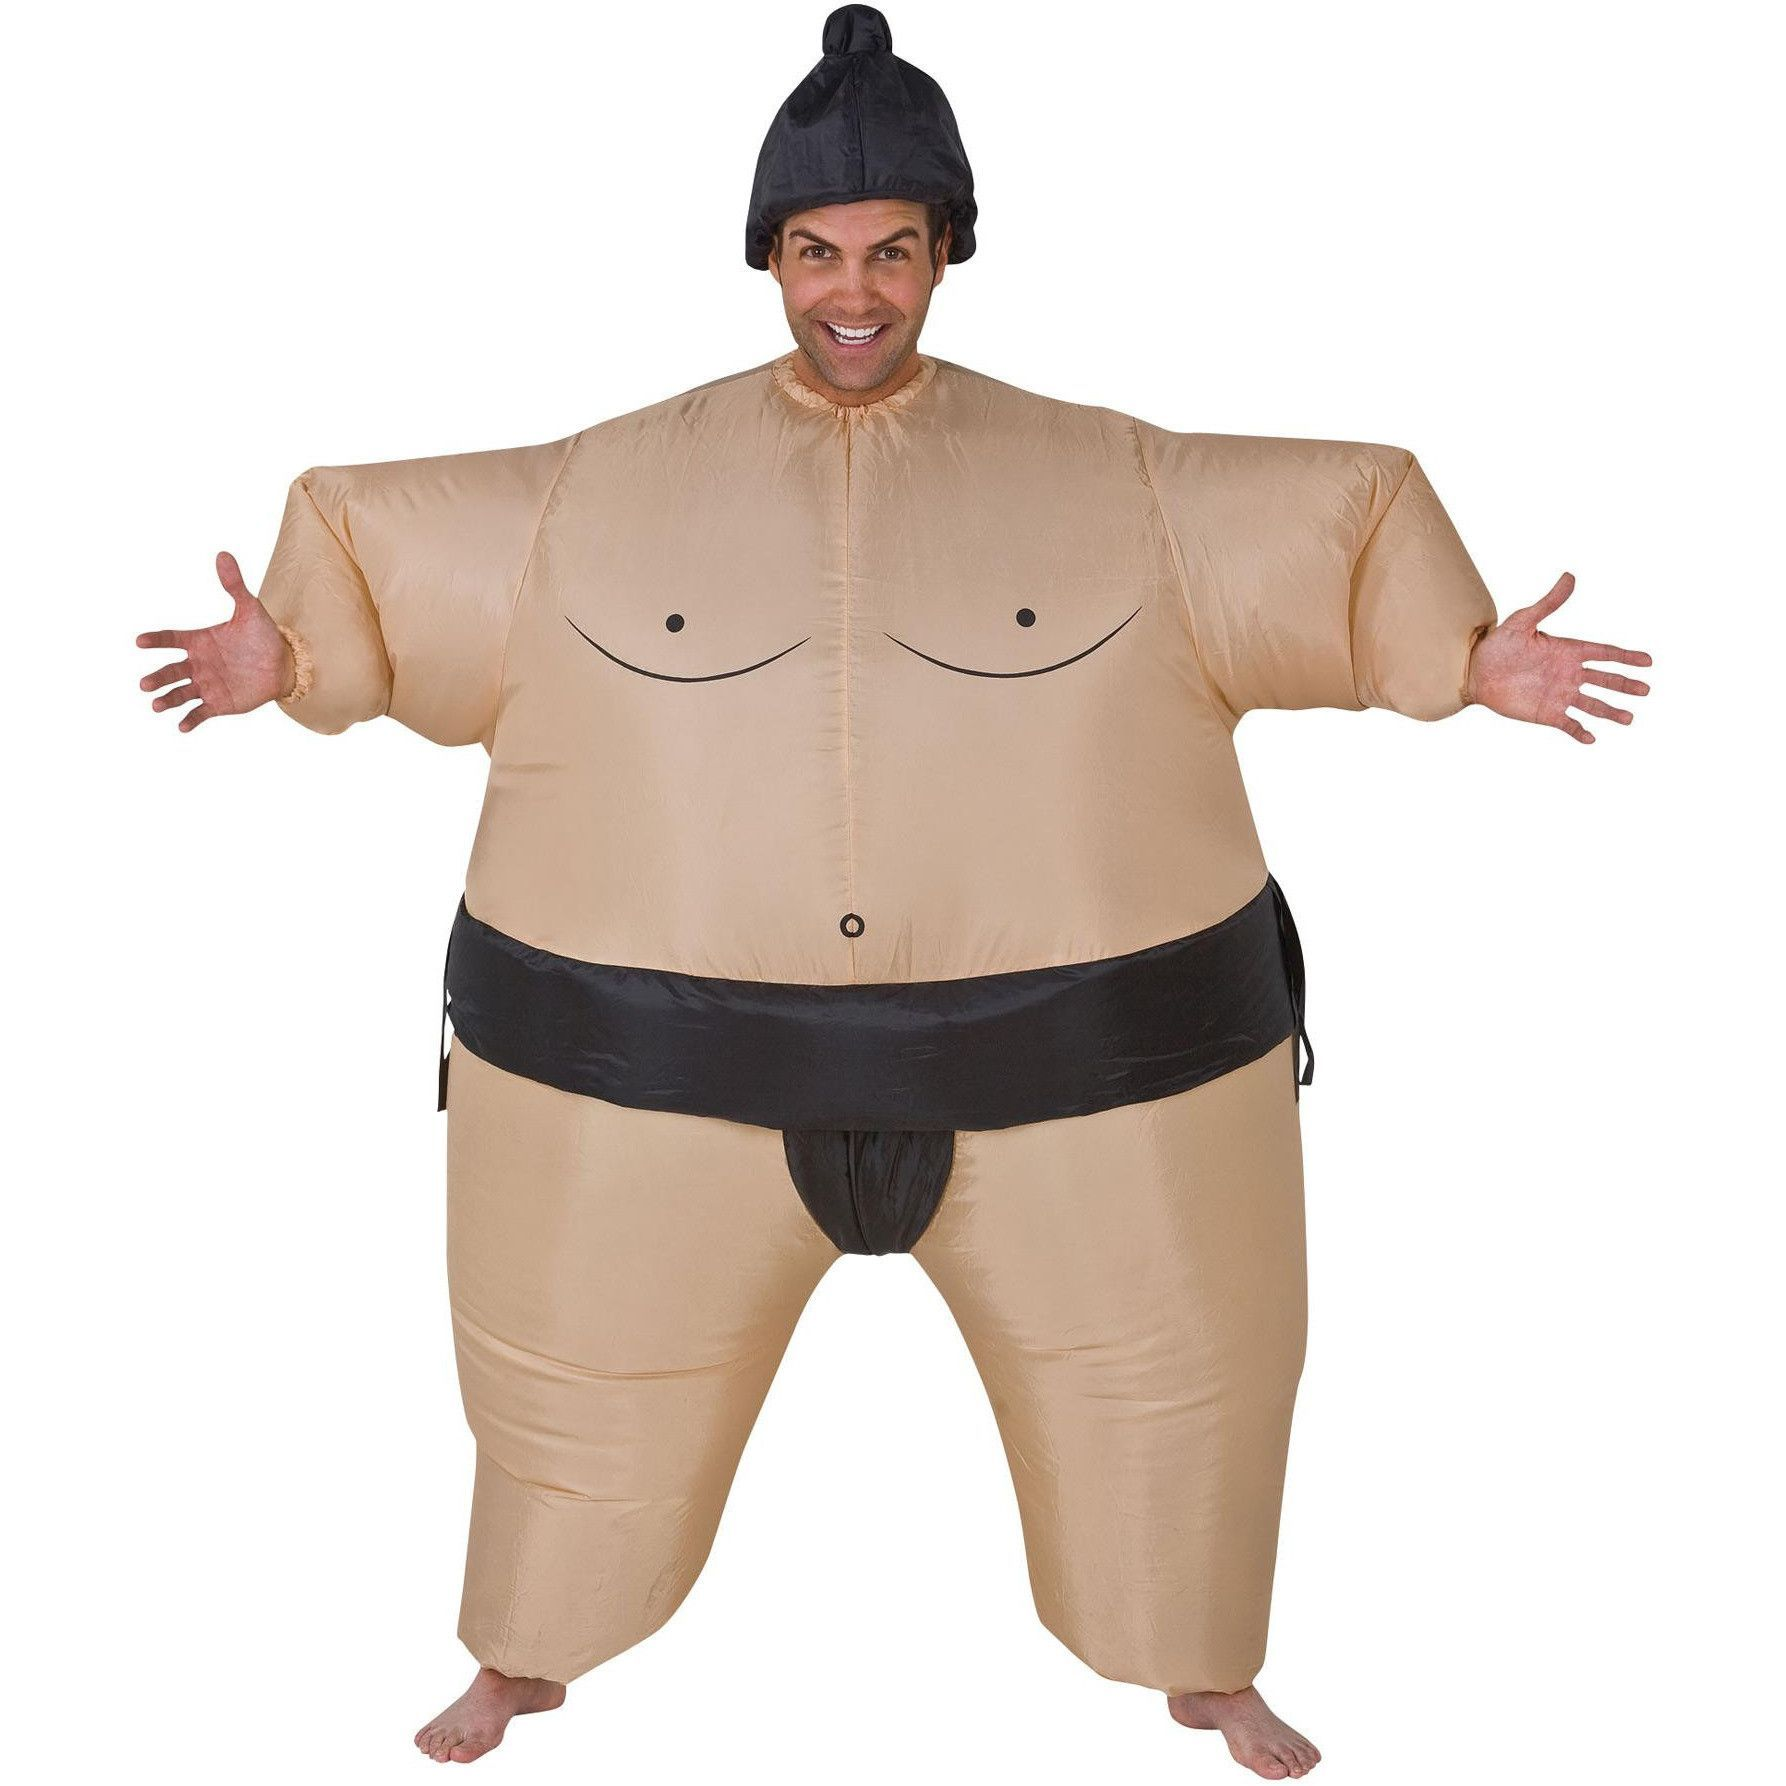 Inflatable Wrestling Sumo Cosplay Costume Fat Suit Halloween Party Fancy Dress